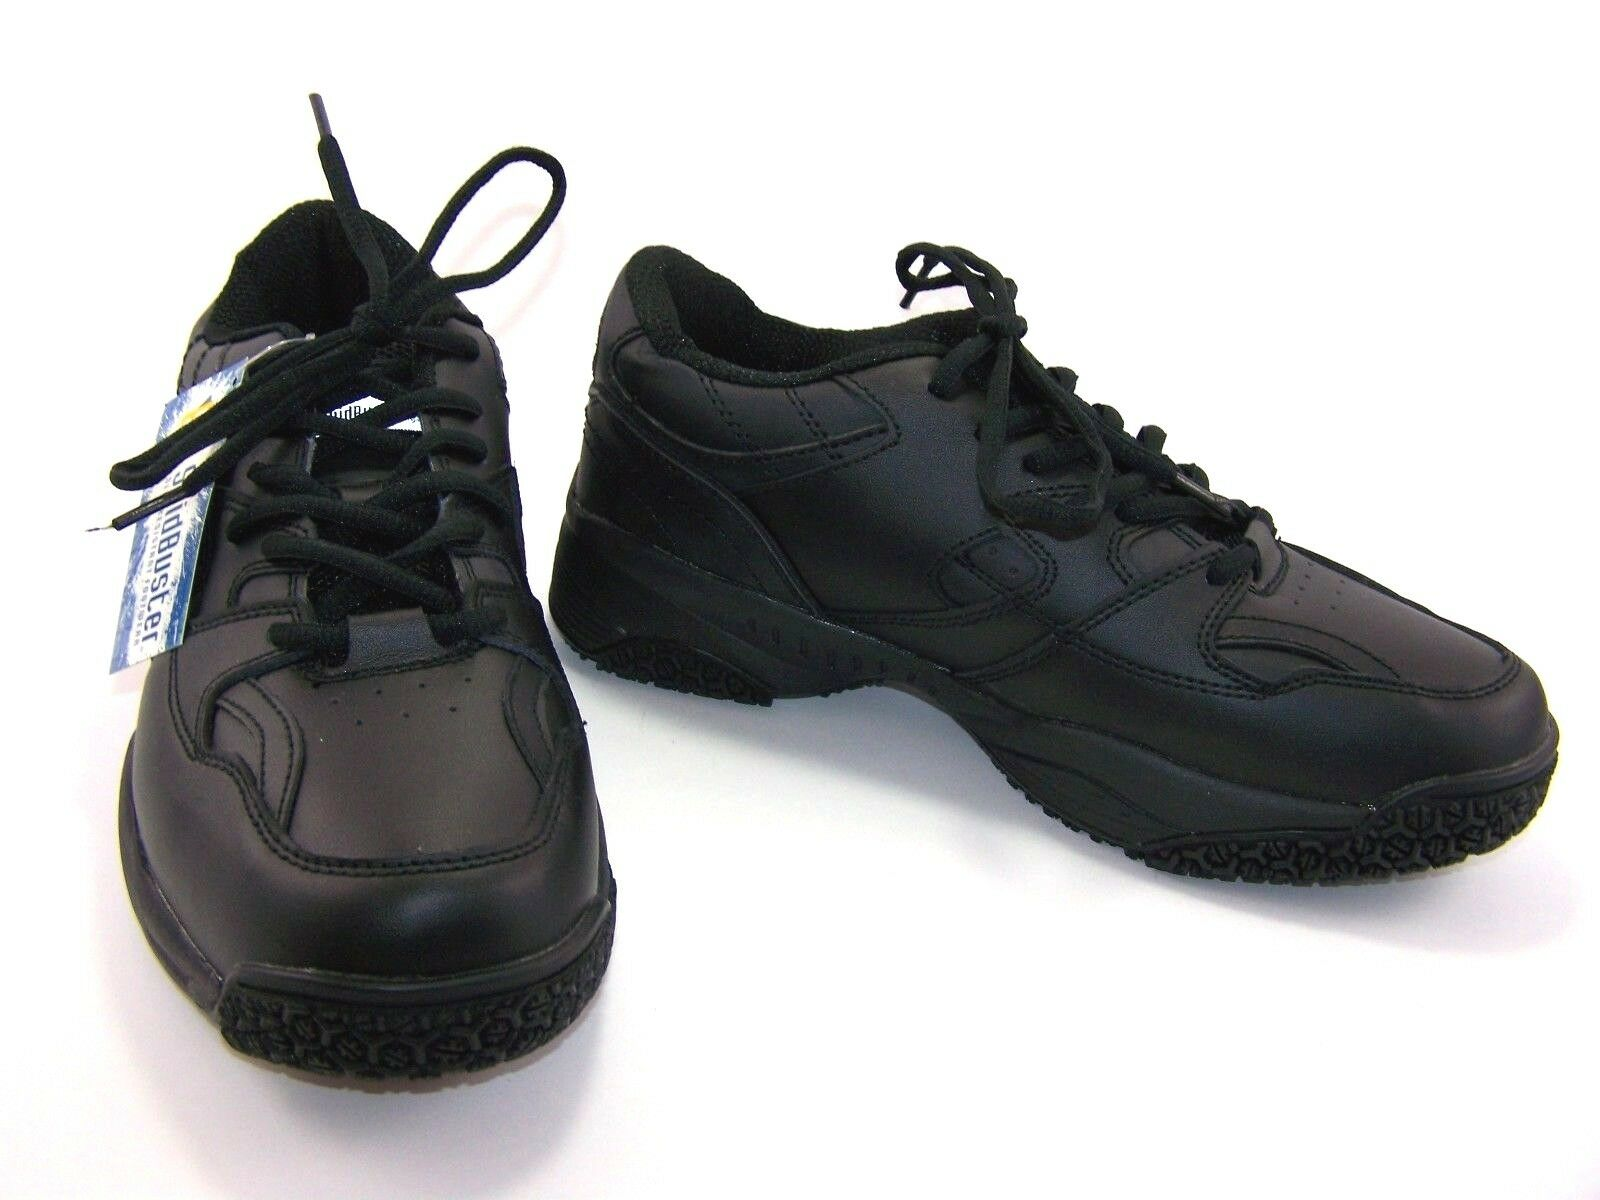 Skidbuster Mens Oxford Soft Toe Slip Resistant Black Size 9 Lace Up Low Top